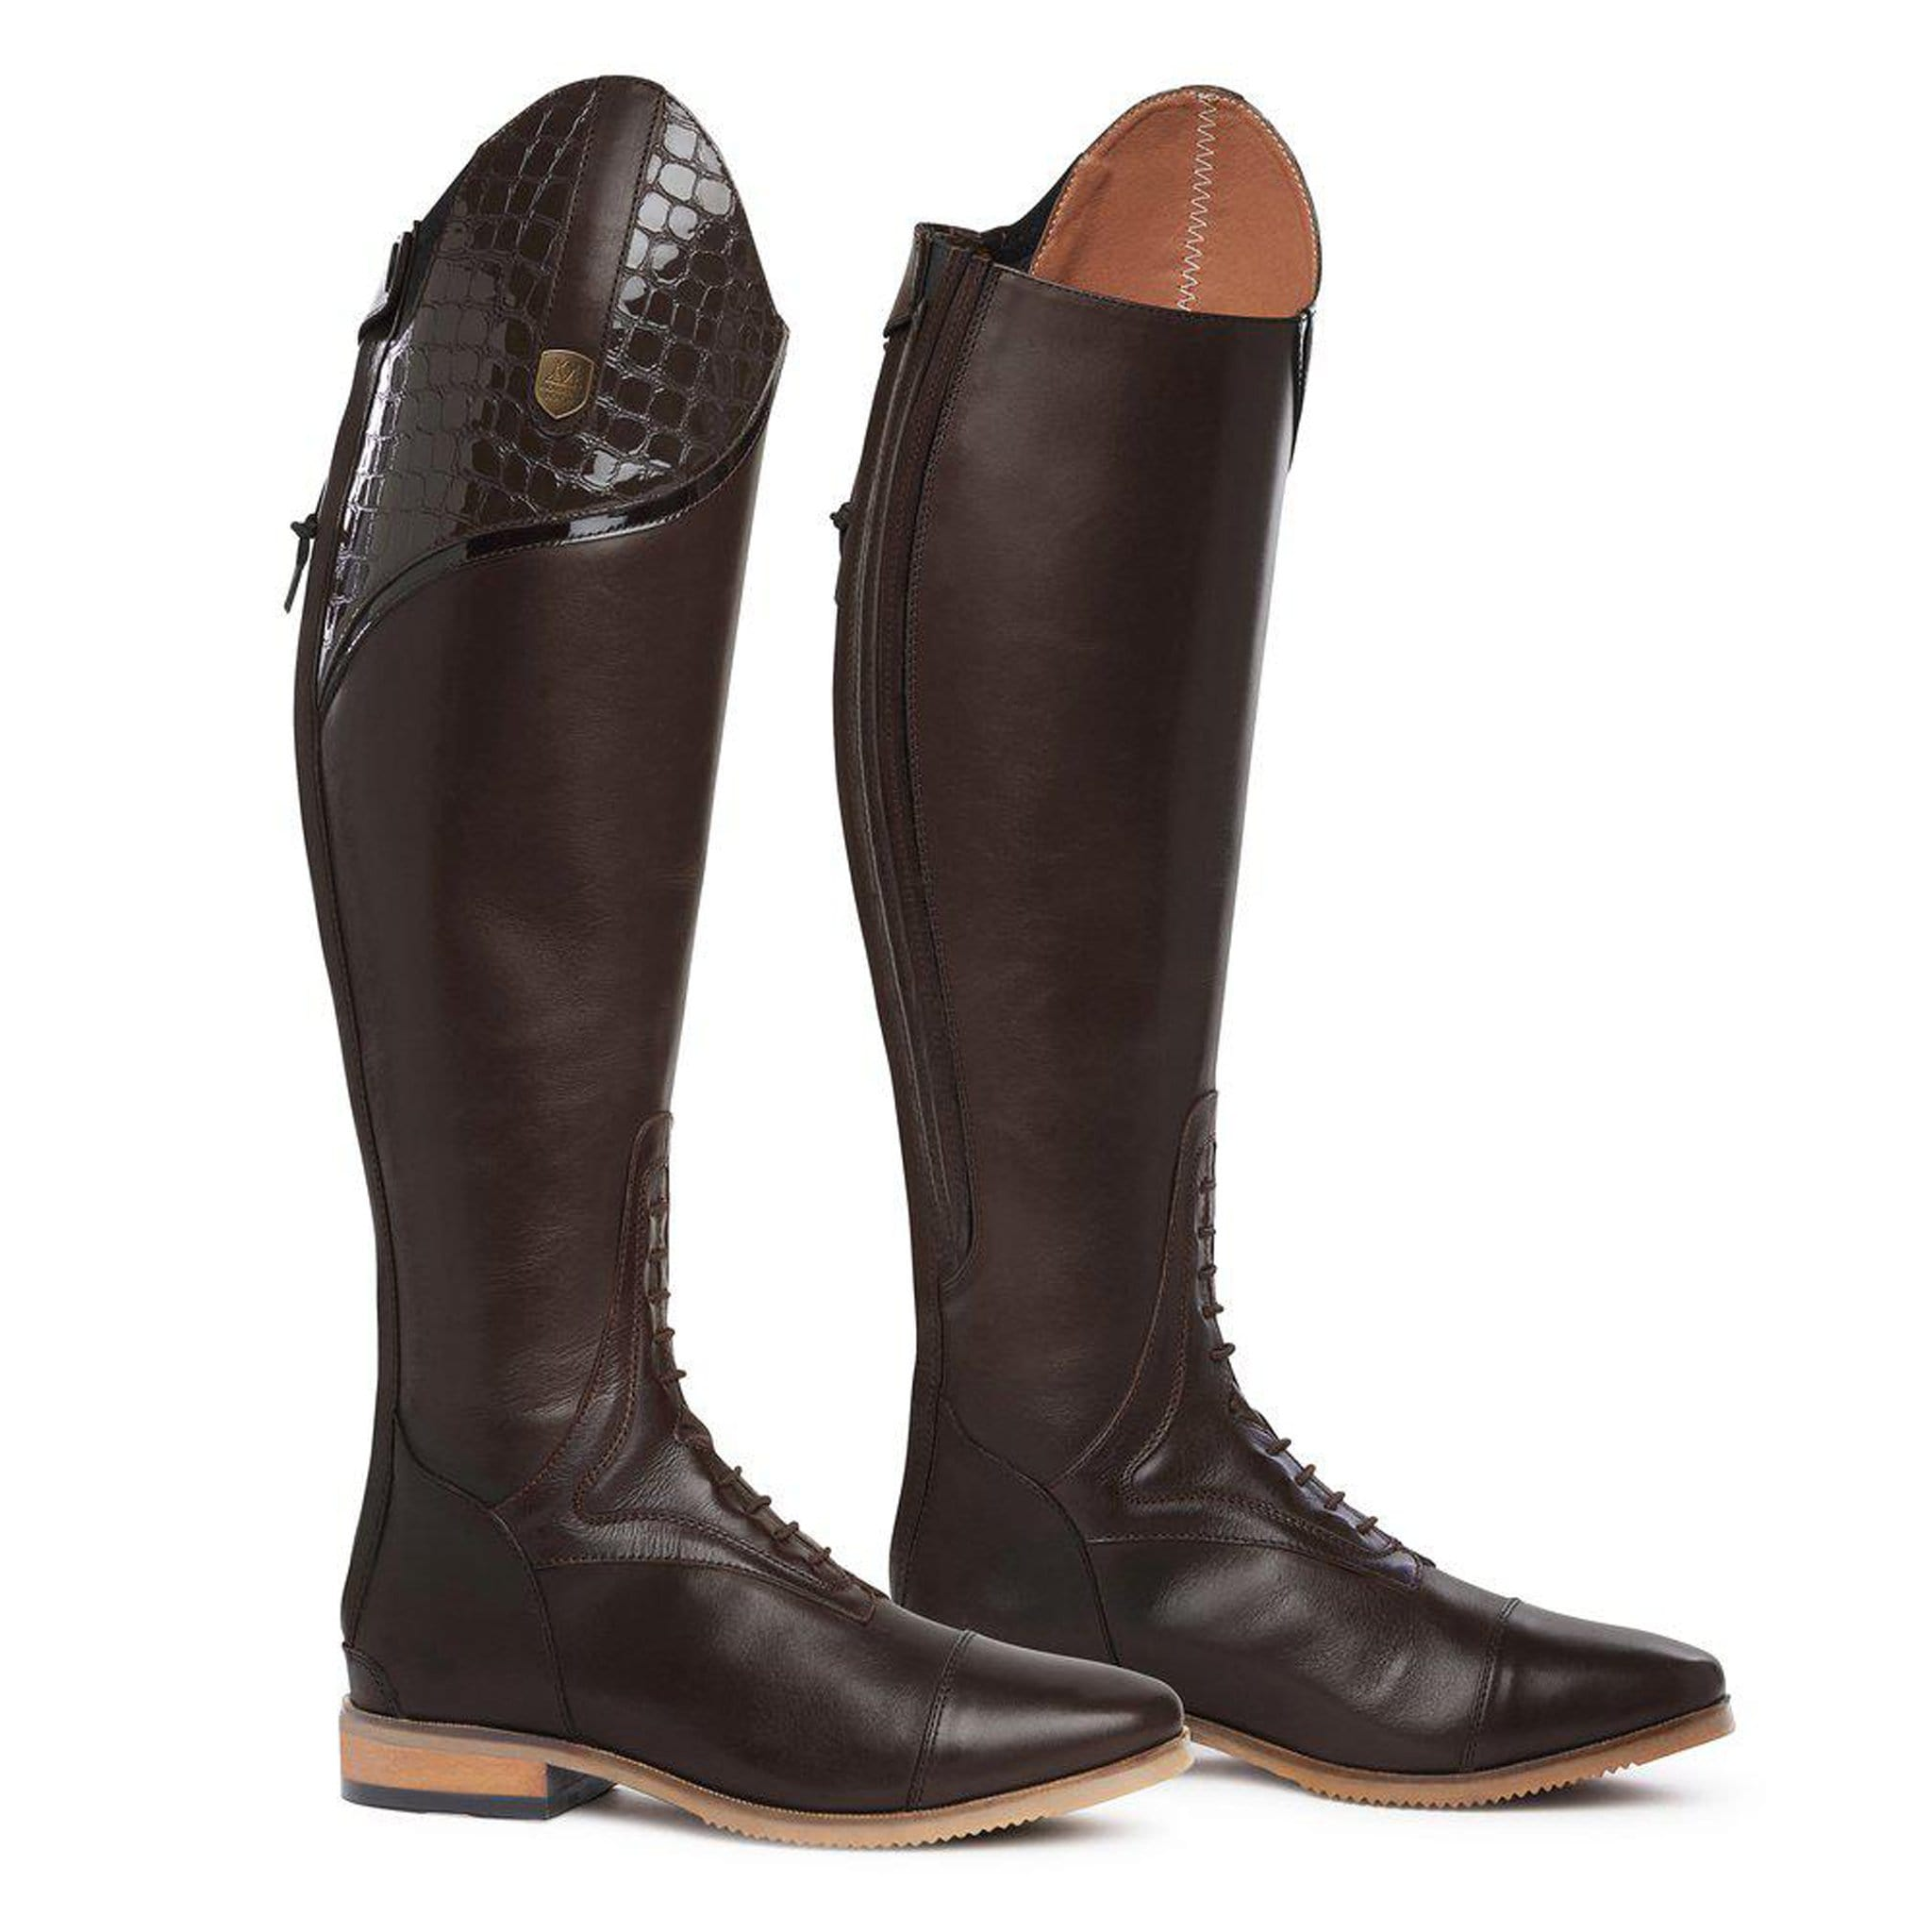 Mountain Horse Sovereign Lux Riding Boots - Dark Brown 0214 Pair